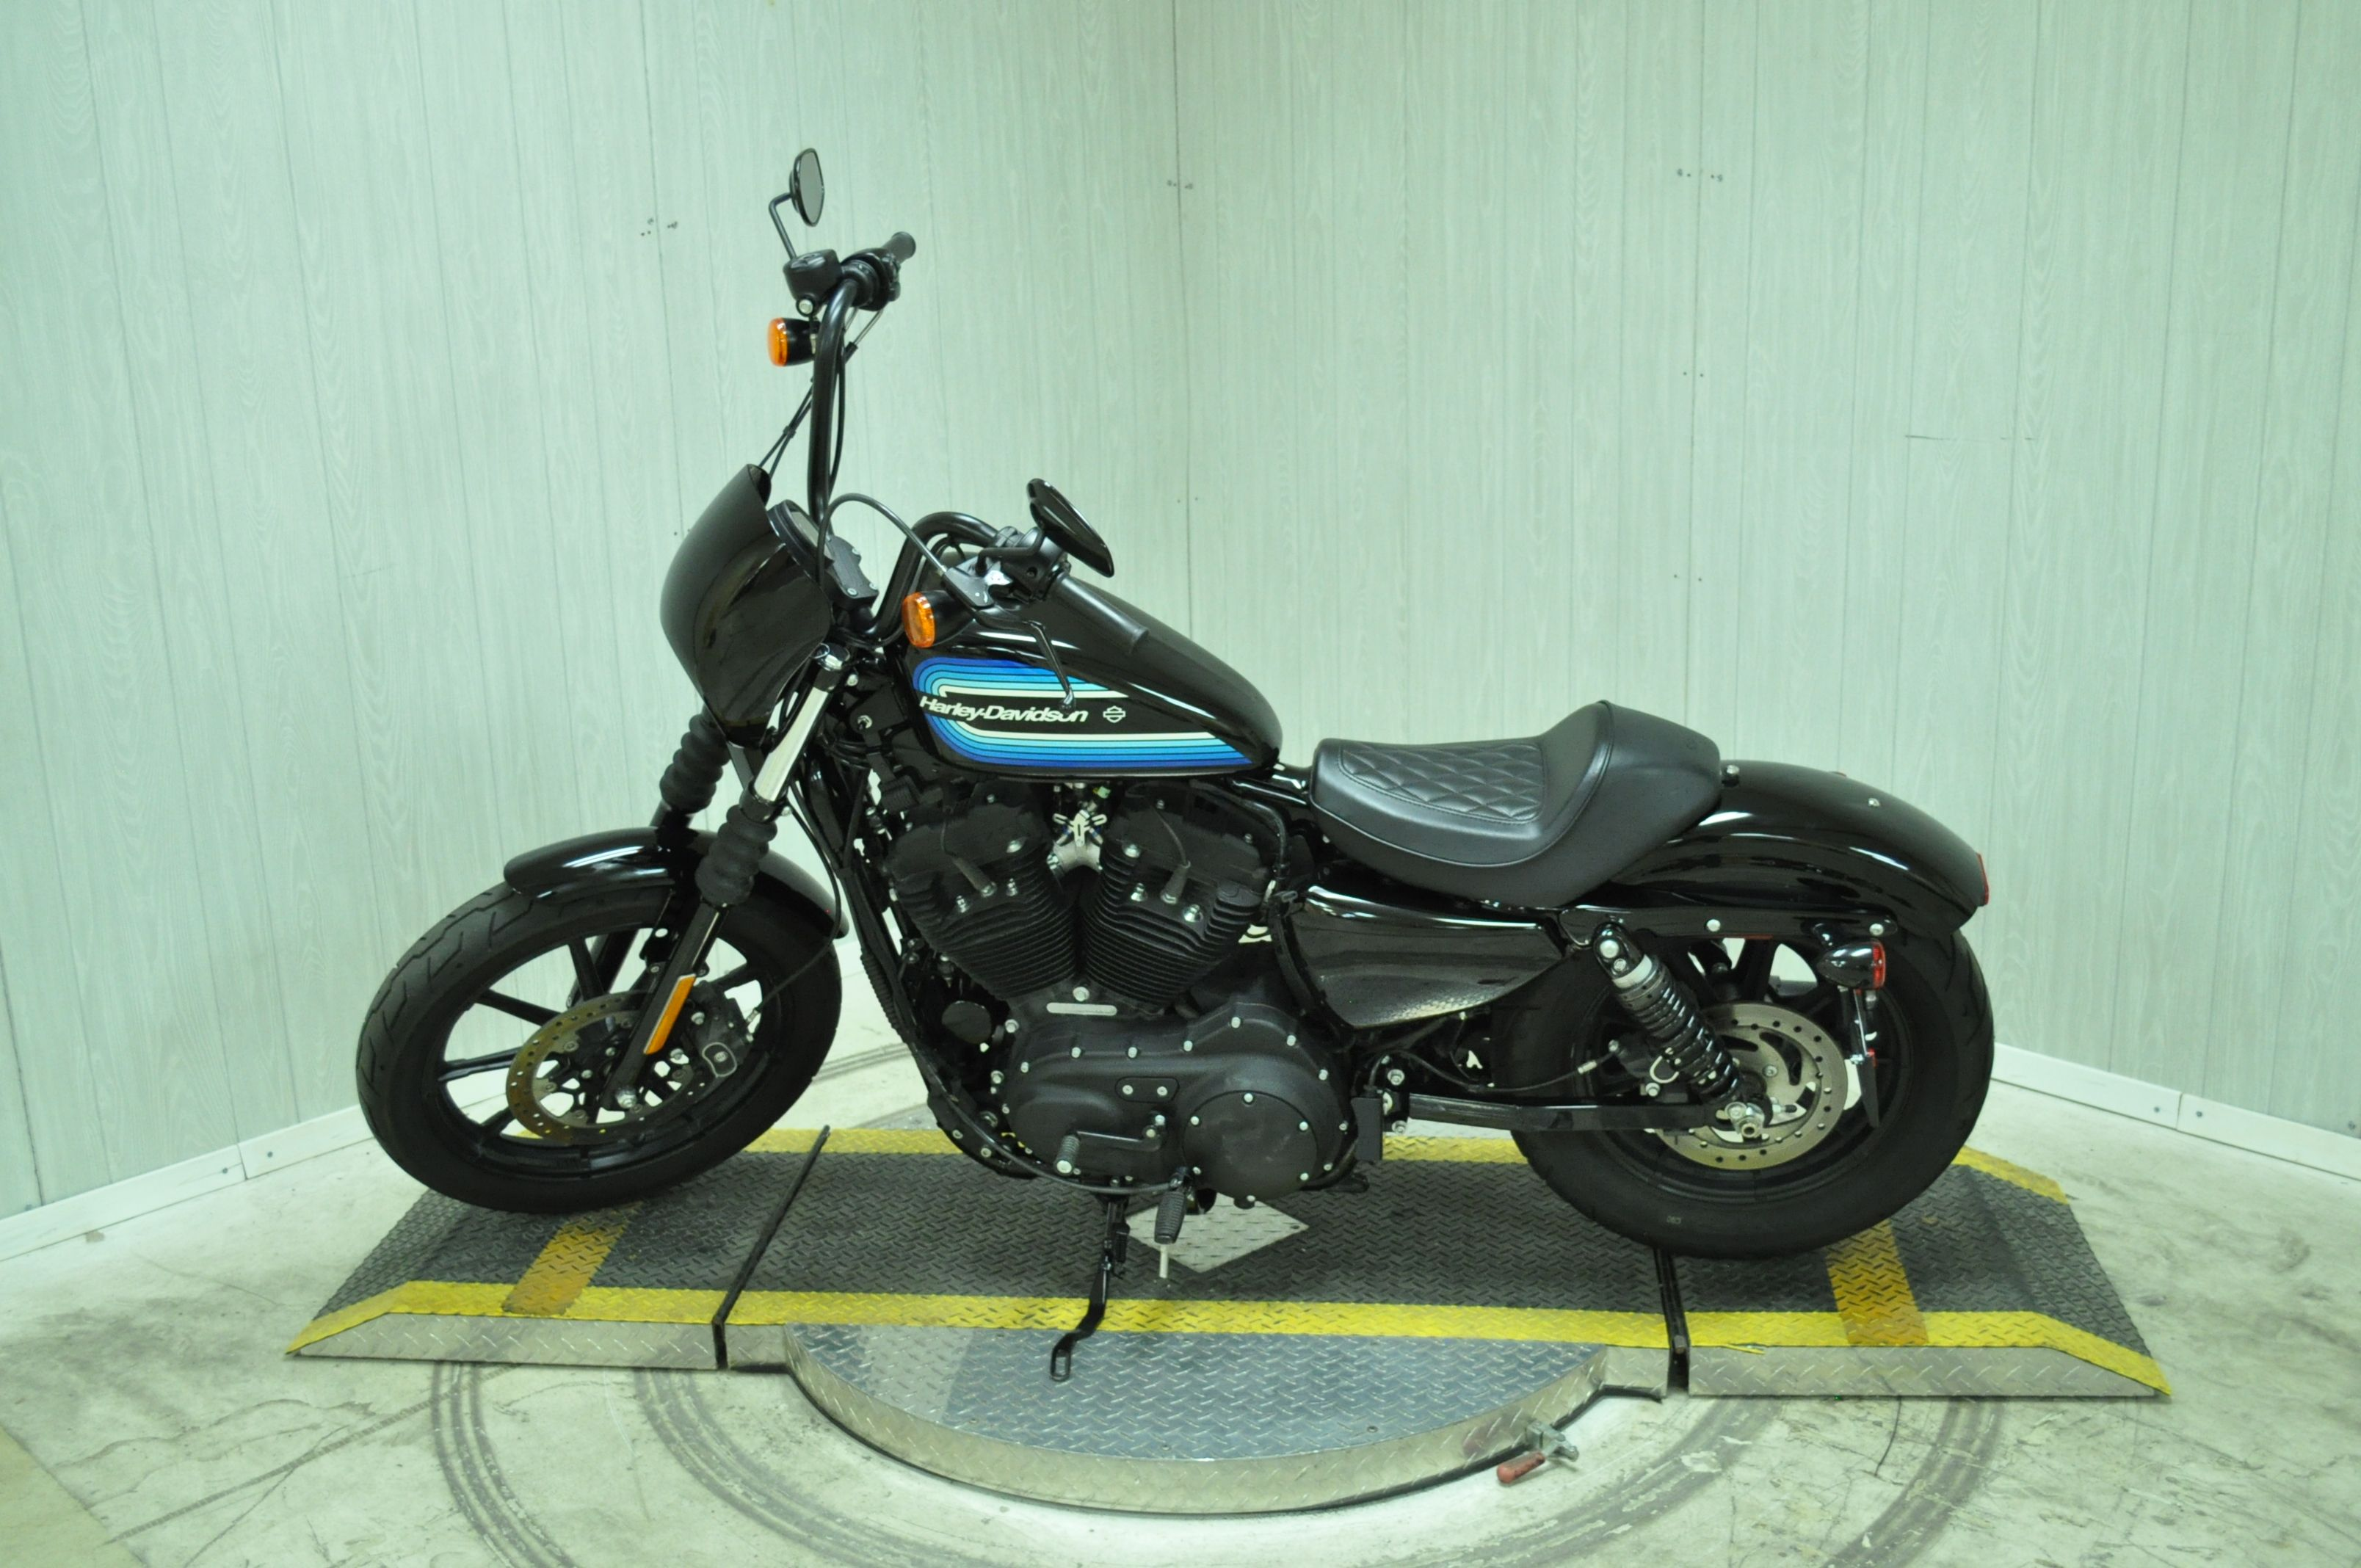 Pre-Owned 2019 Harley-Davidson Iron 1200 XL1200NS